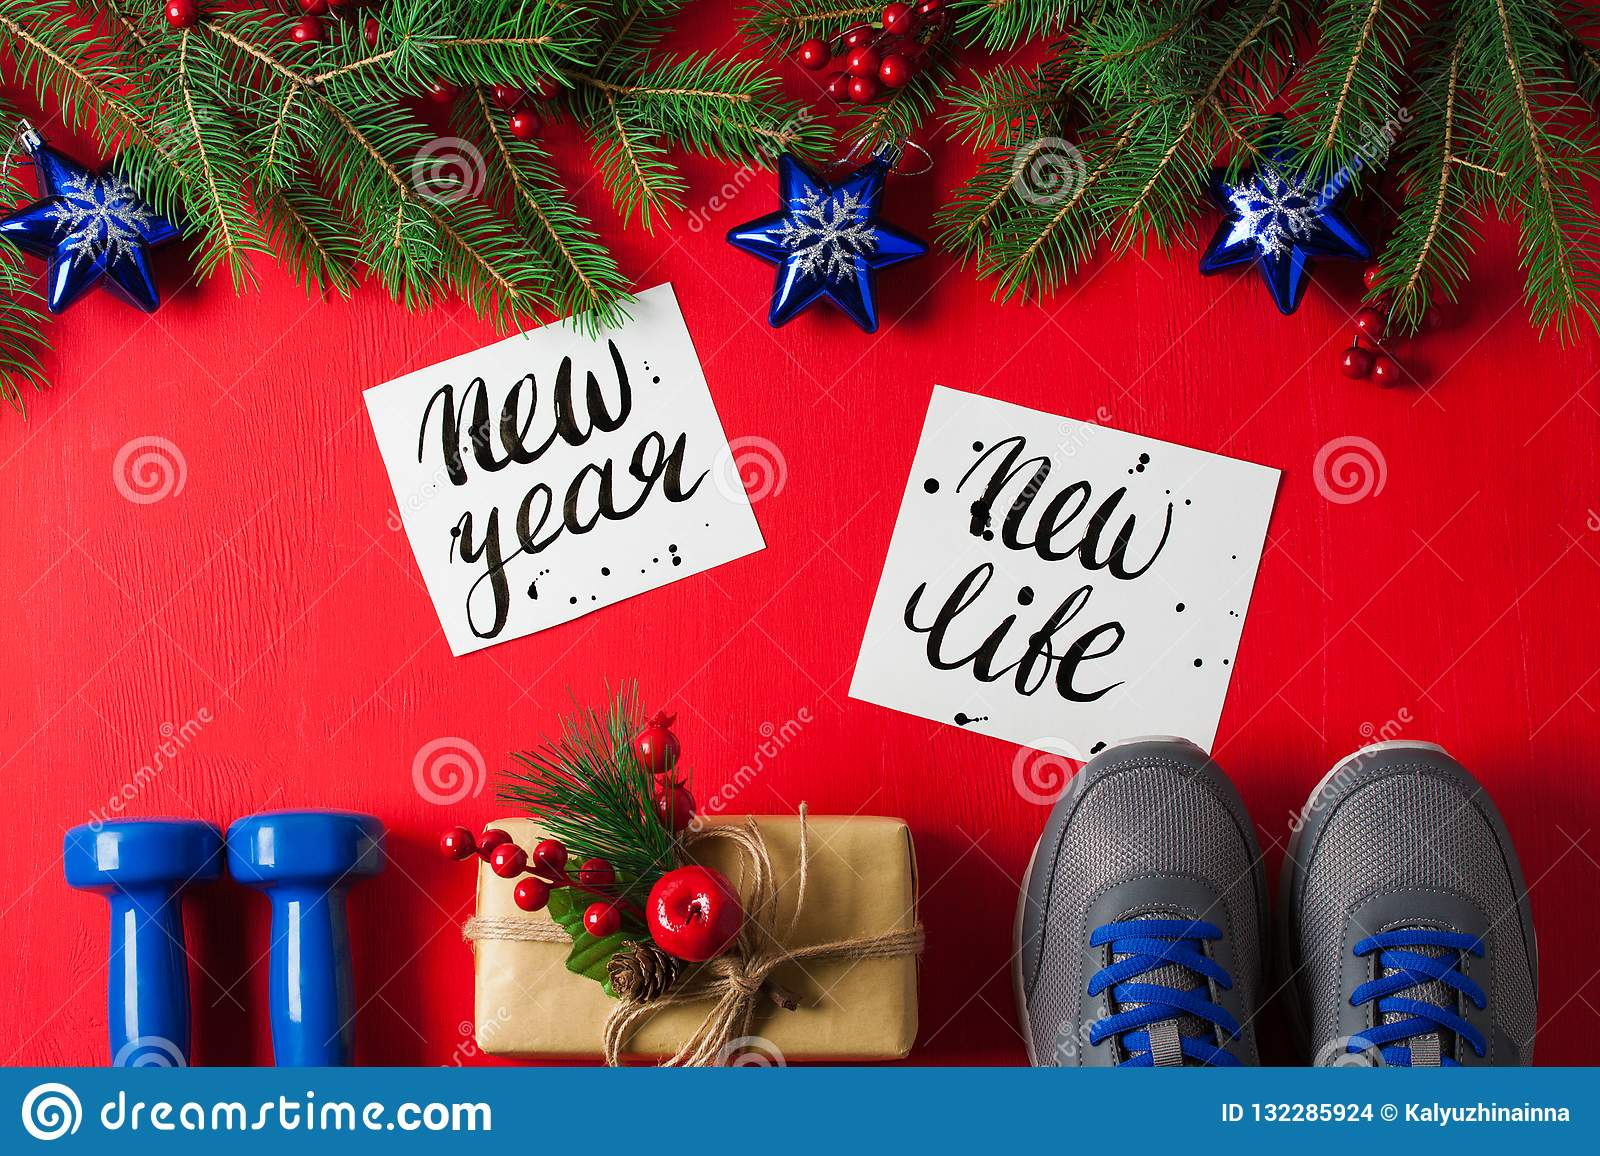 Christmas sport composition dumbbells sneakers new year new life